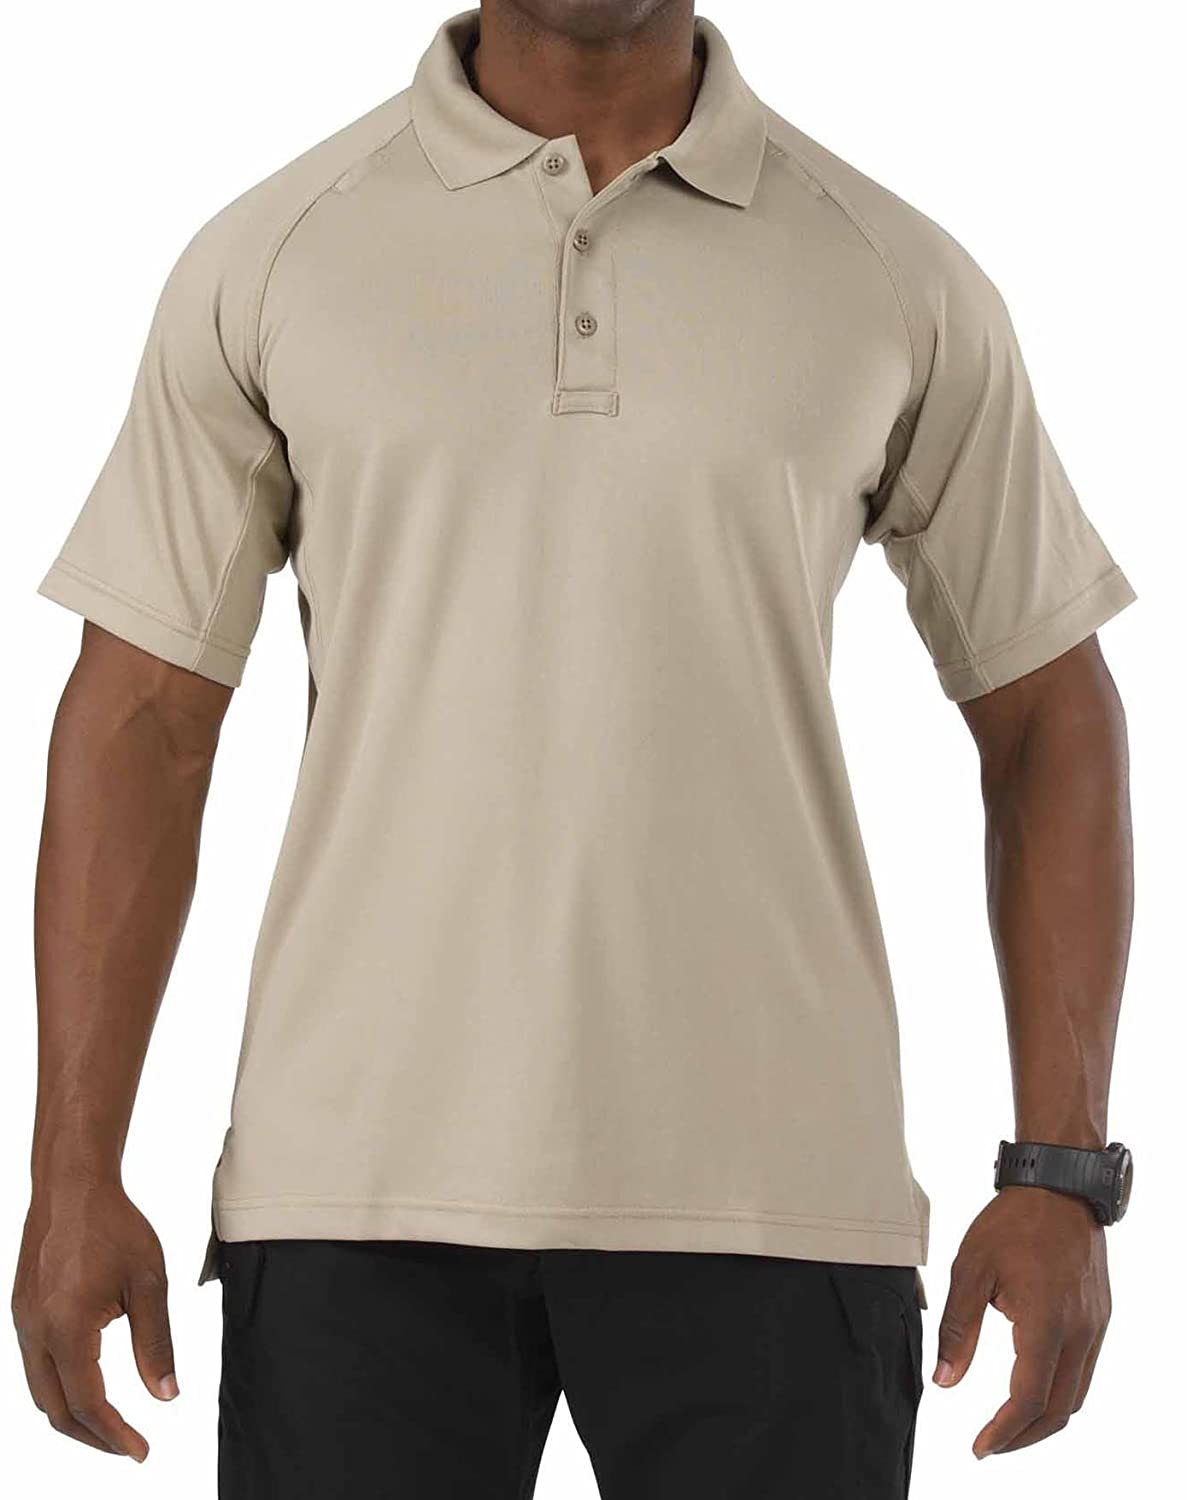 5.11 Men's PERFORMANCE Short Sleeve Polo Tactical Shirt, Style 71049 Great Lakes MP 5-71049